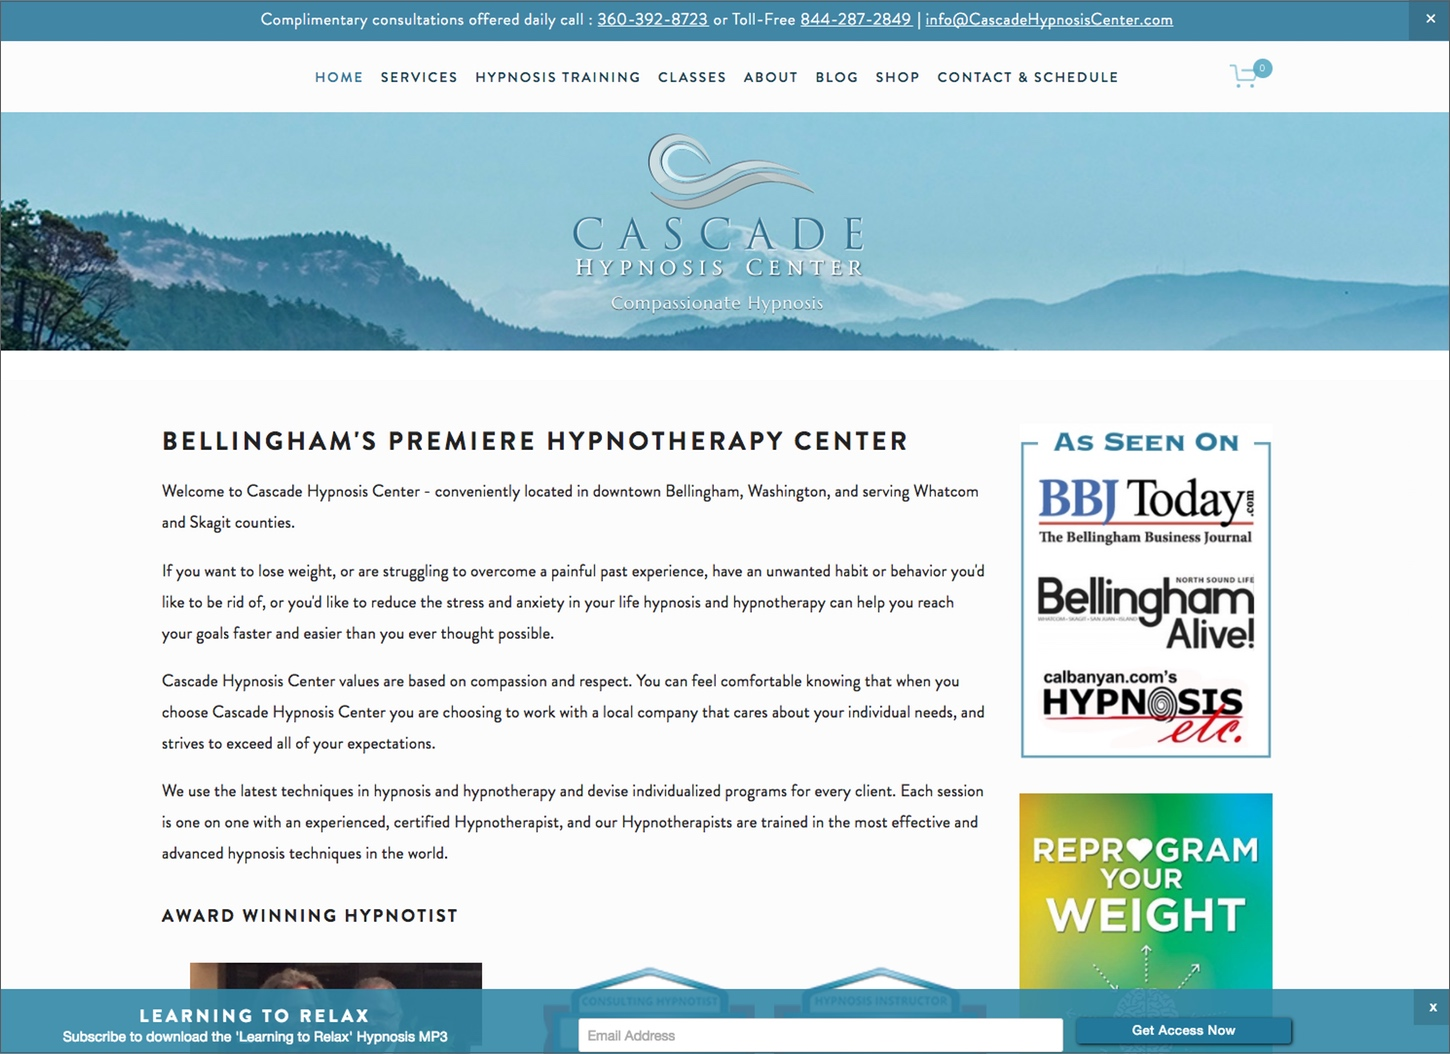 Cascade Hypnosis Center